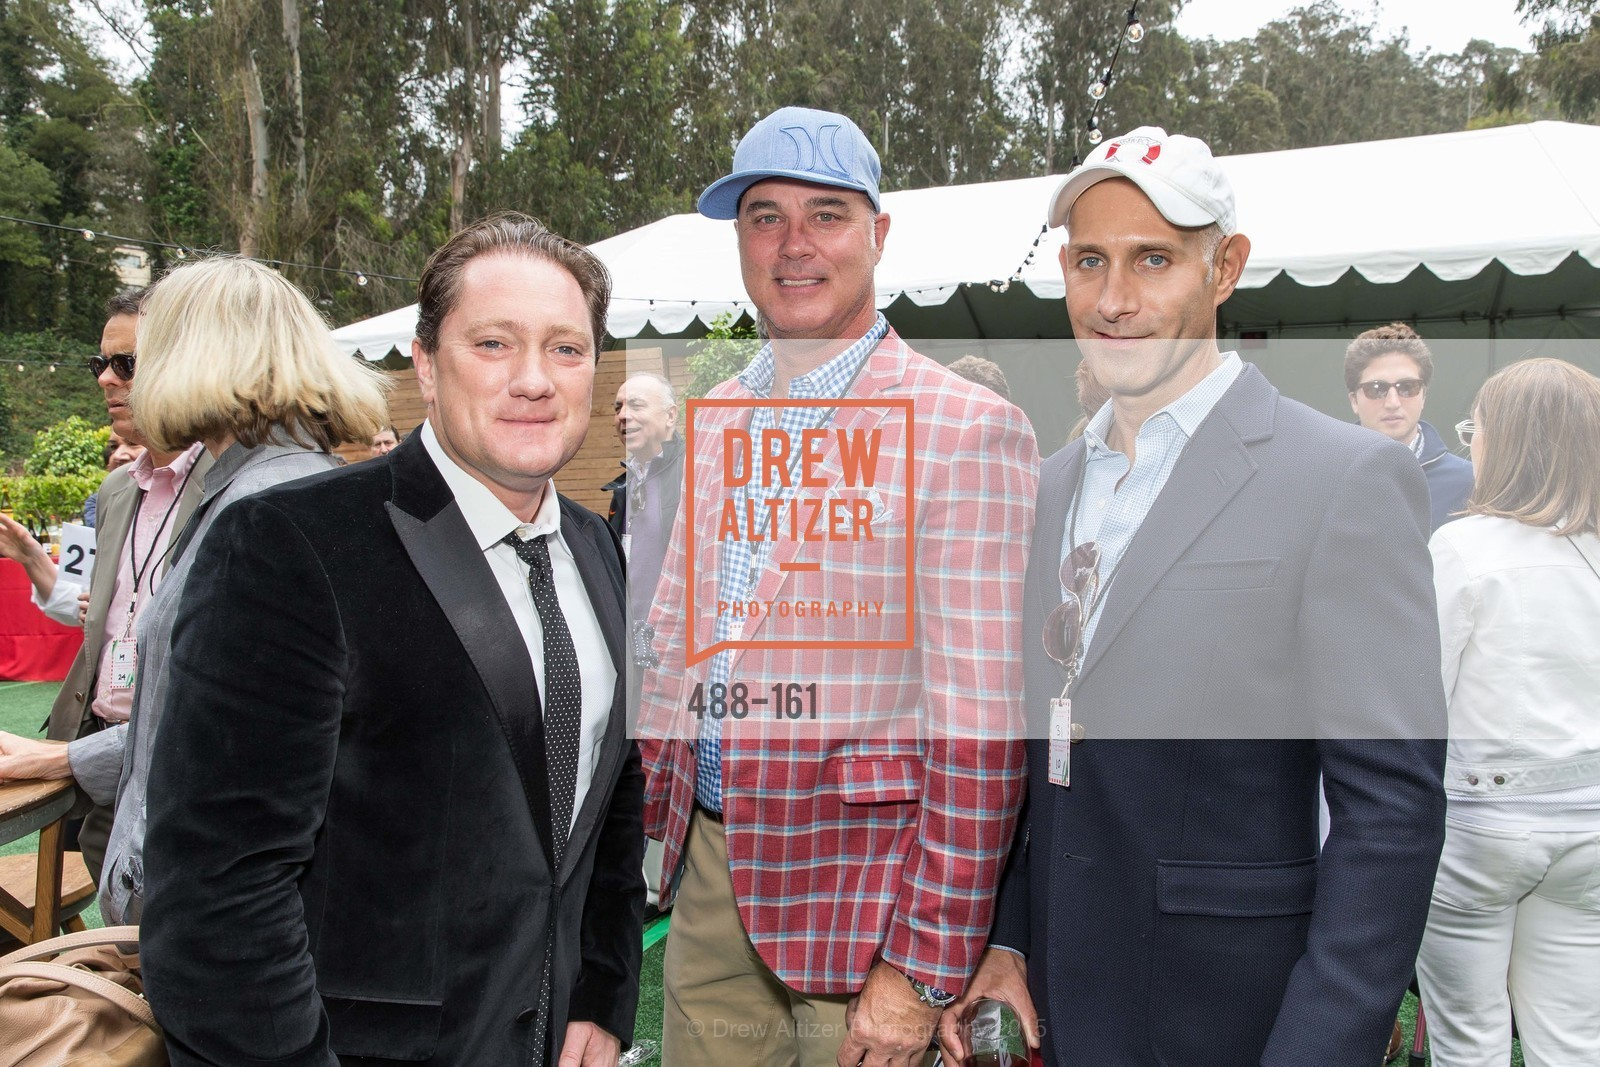 Liam Mayclem, Robert Foutain, Lino Cortina, THE BIG PICNIC Kicking off  2015 Stern Grove Season, Stern Grove. 2750 19th Avenue, June 14th, 2015,Drew Altizer, Drew Altizer Photography, full-service event agency, private events, San Francisco photographer, photographer California